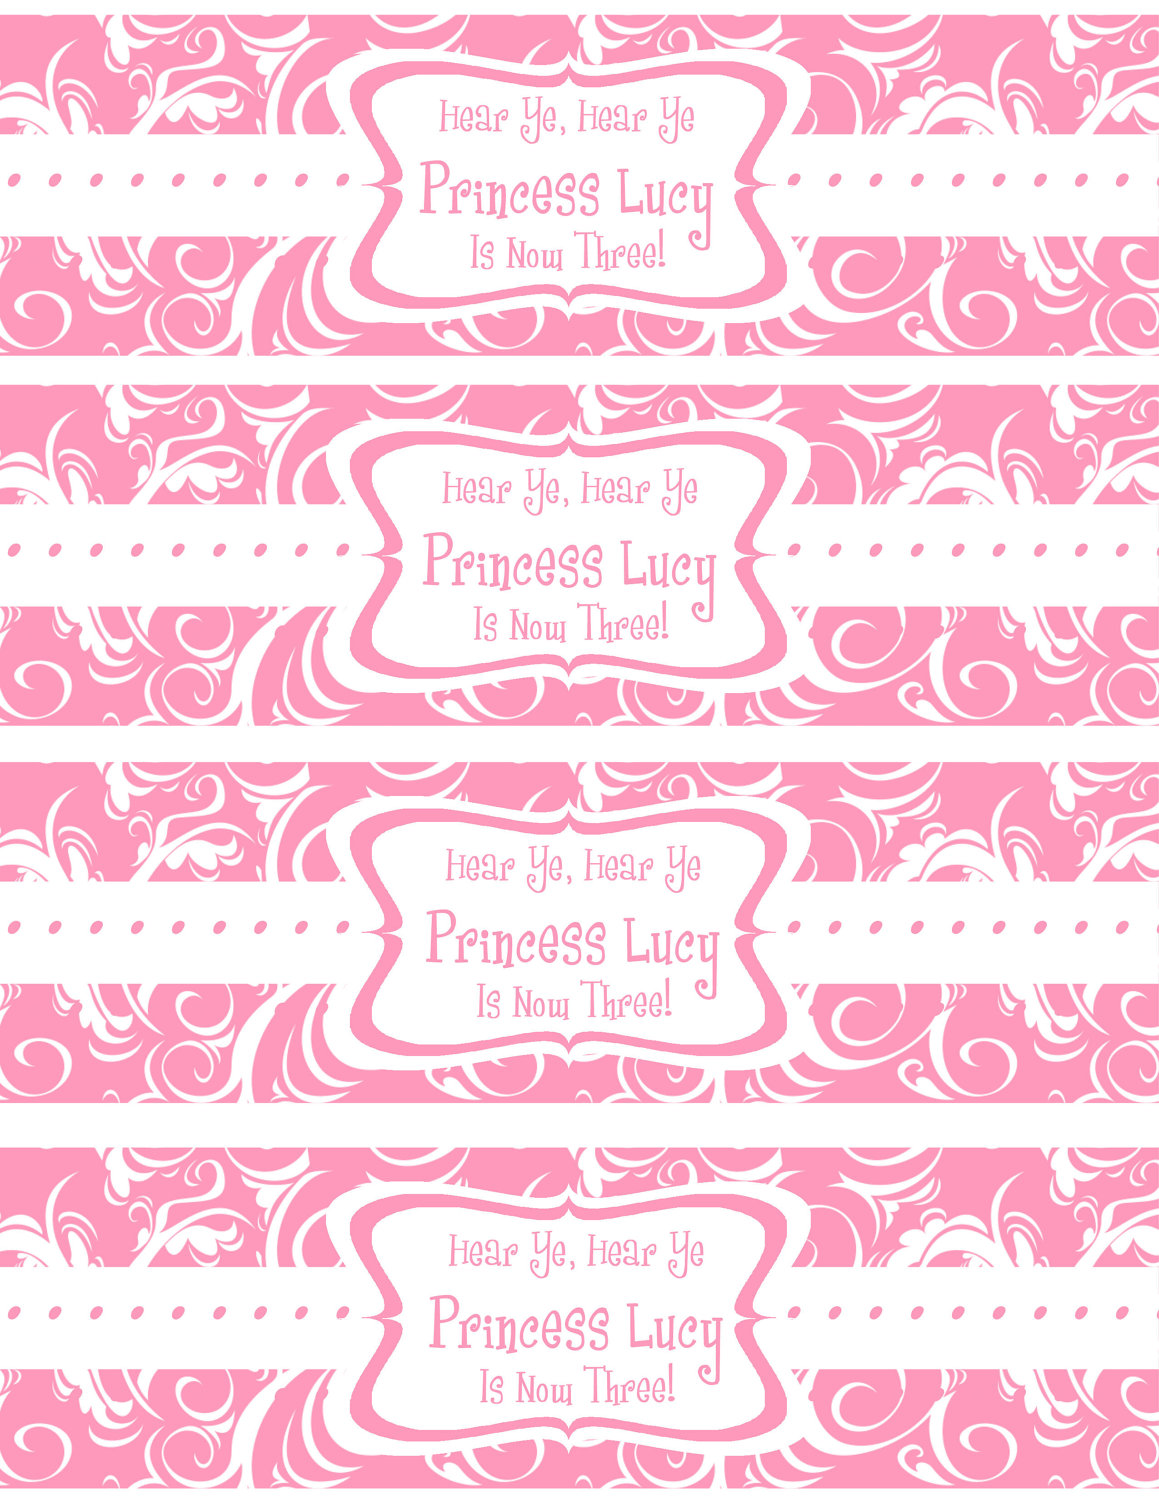 birthday labels template free ; cc95f9856d35f026335faa555cefaadd